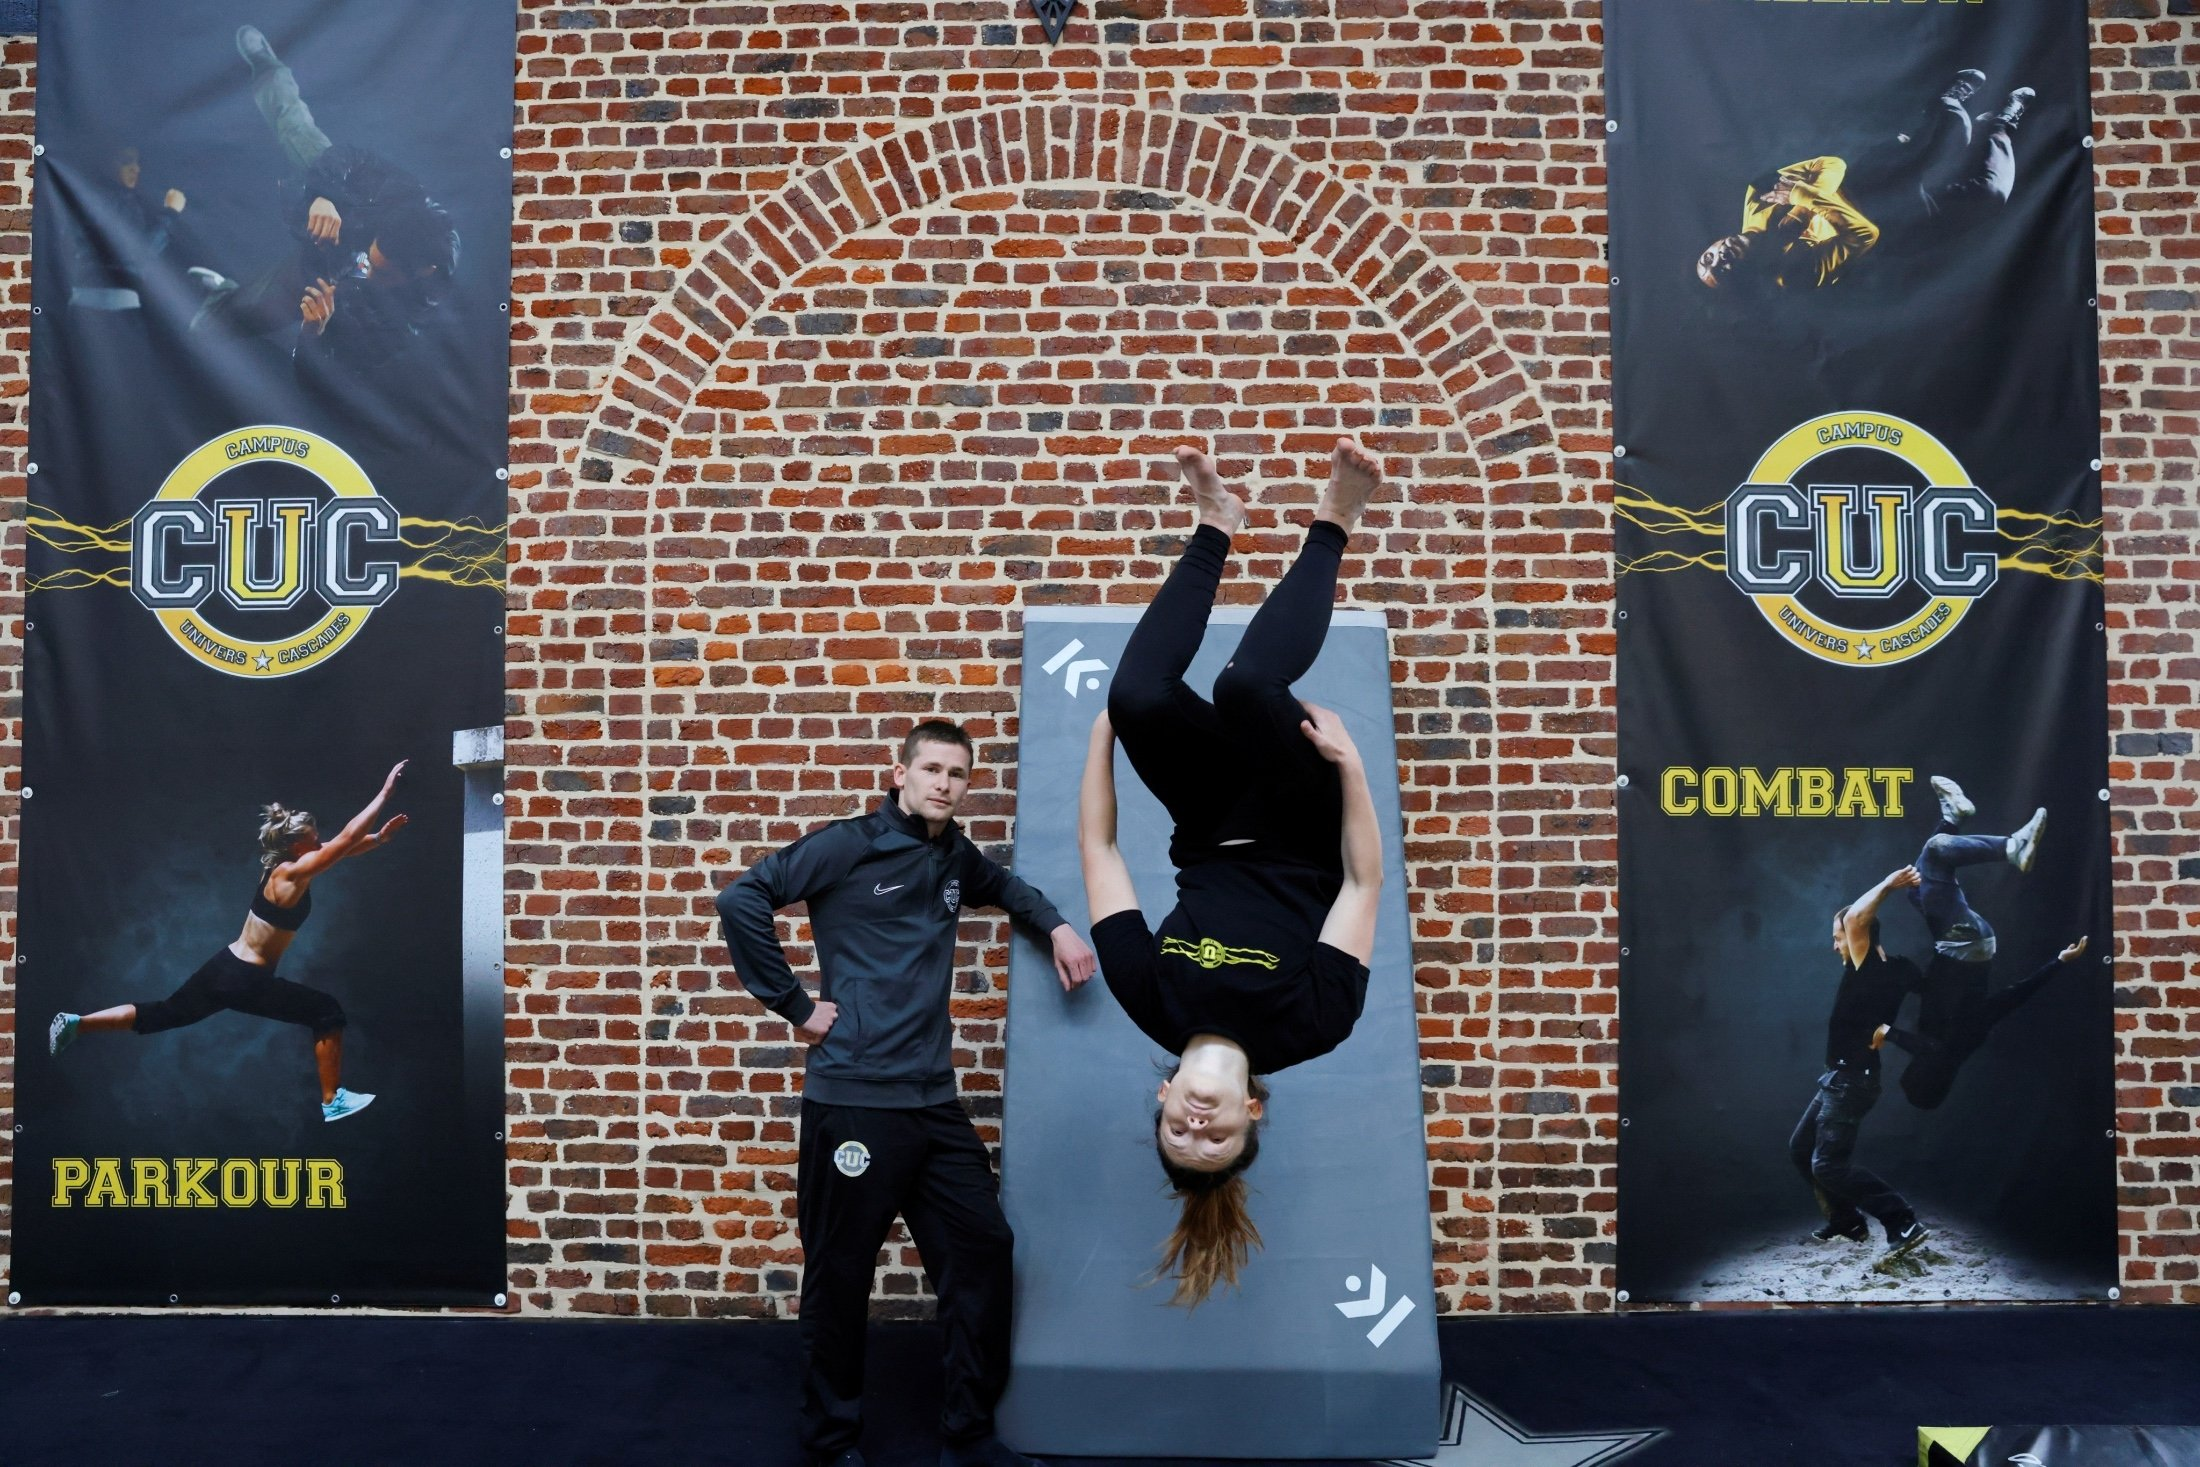 CUC director Lucas Dollfus poses next to student Zoe Simonnuti during a training session at France's Campus Univers Cascade (CUC), a training ground for stuntpeople, in Le Cateau-Cambresis, France, May 4, 2021. (Reuters Photo)